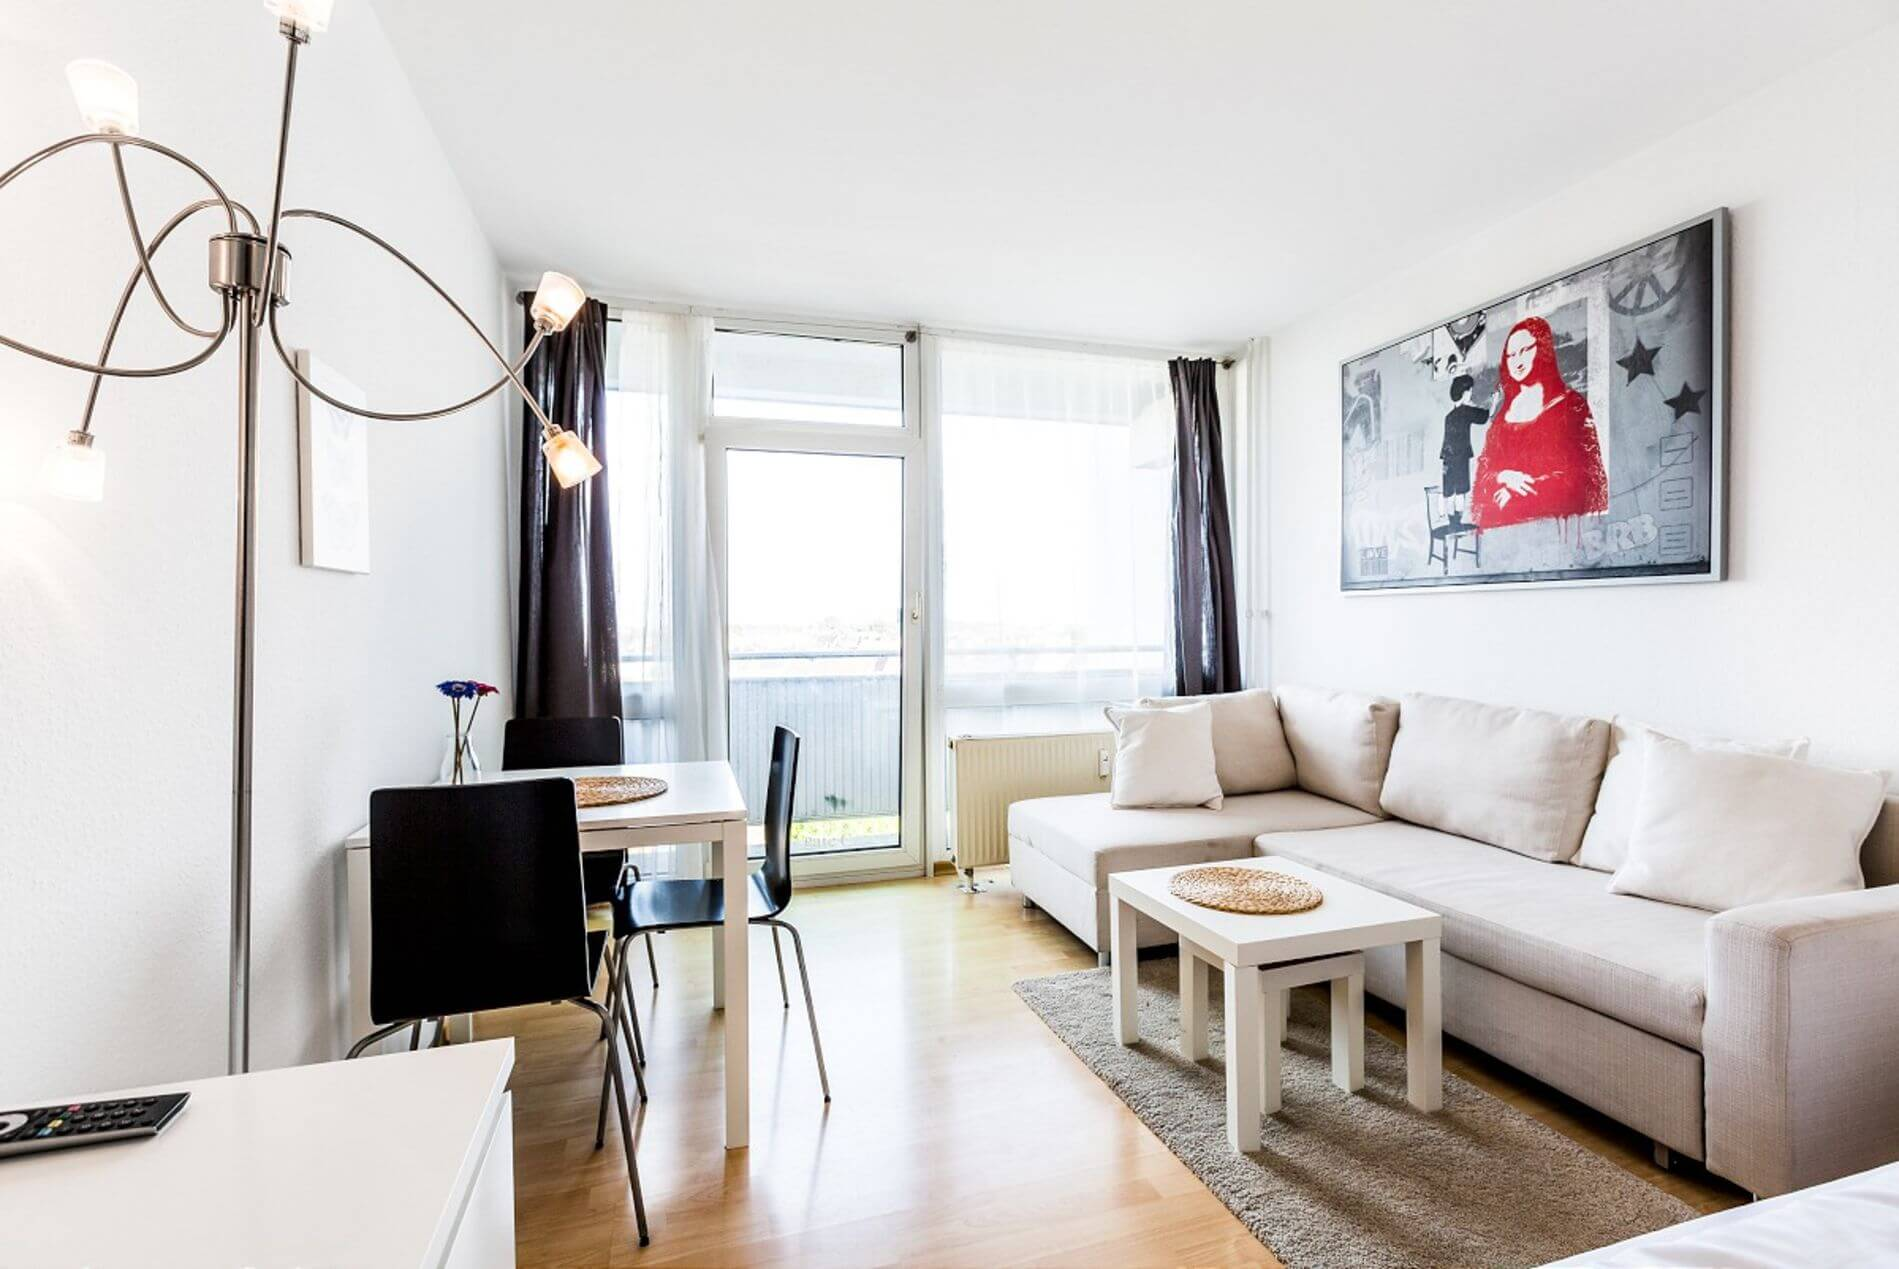 Temporary furnished accommodation in Cologne Deutz